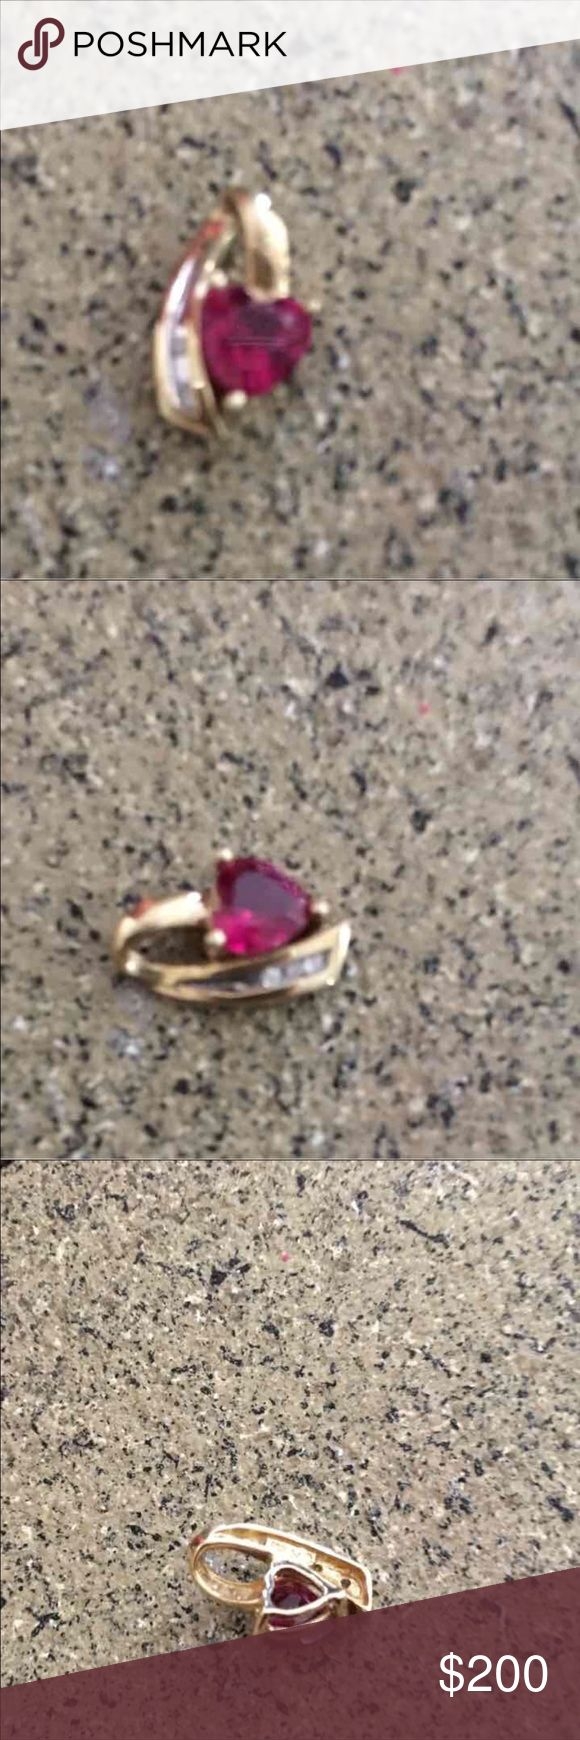 Kay jeweler's LIKE NEW Ruby and 4 mirror diamond heart necklace charm in 10 carat yellow gold Kay Jewelers Jewelry